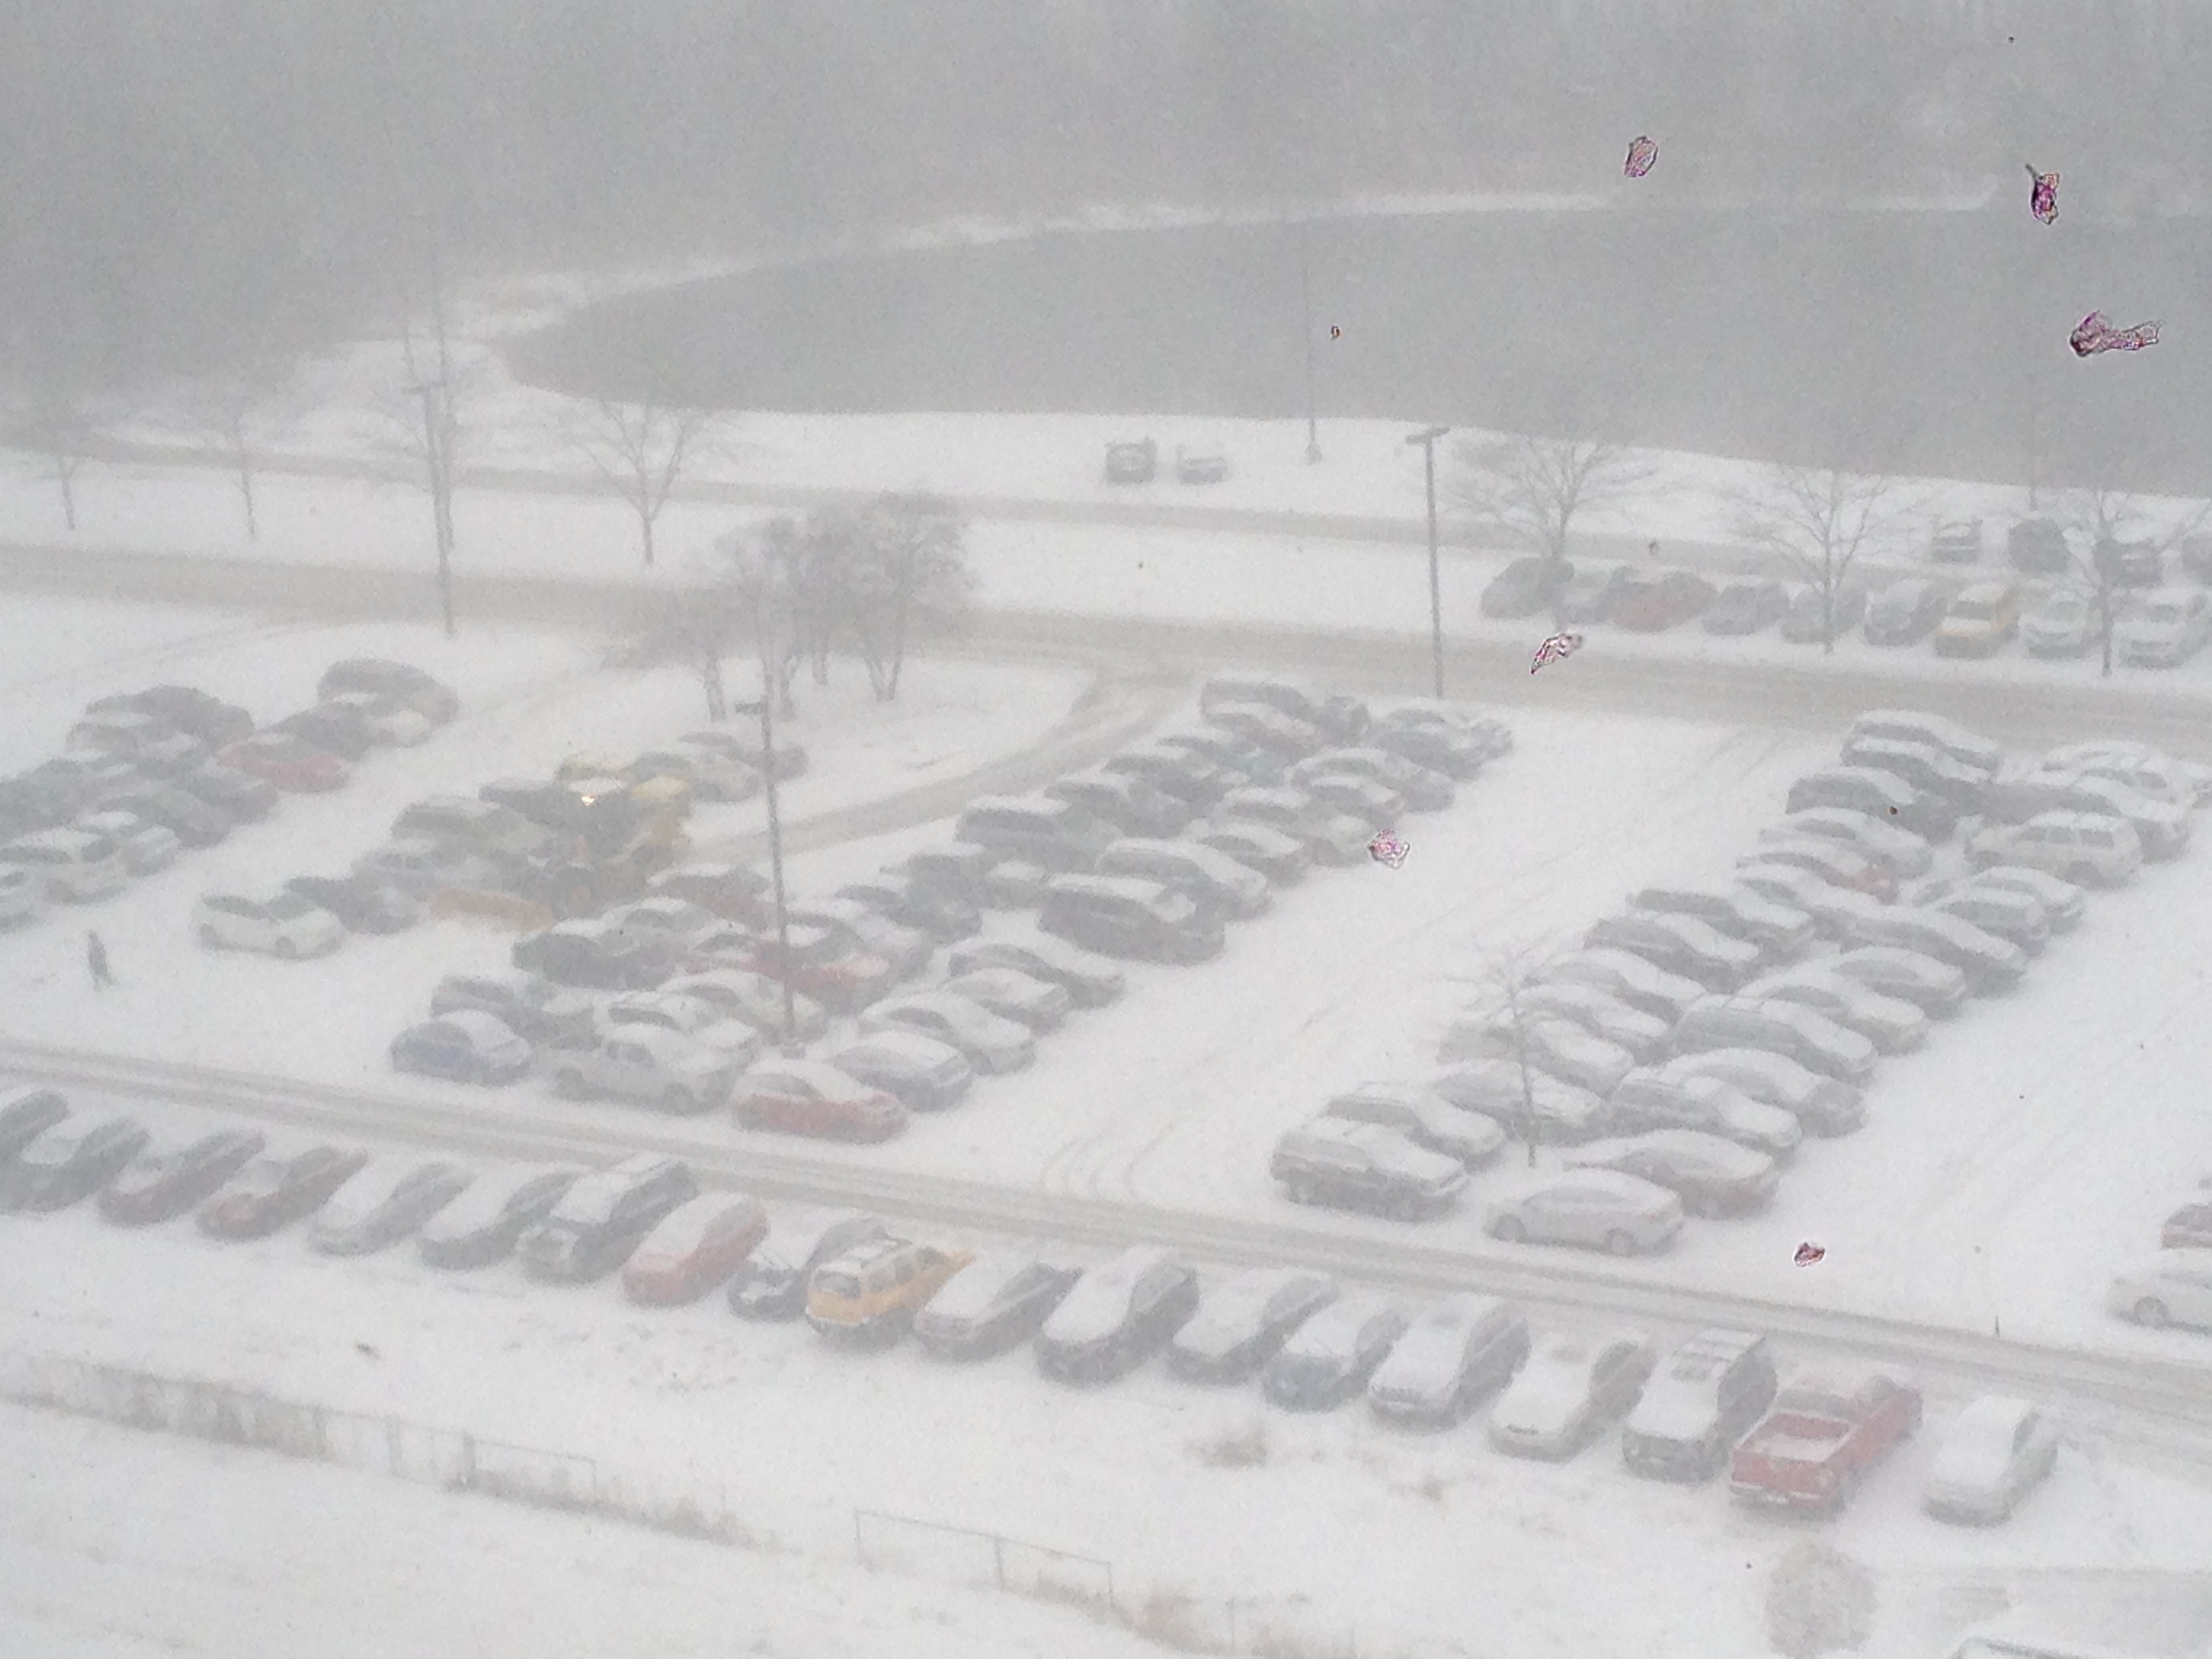 Monday's snowfall blanketed the Wilson Hall parking lot three inches deep. Spring has begun, yet it is still too early to put away the snow shovels. Photo: Lynn Garren, SCD